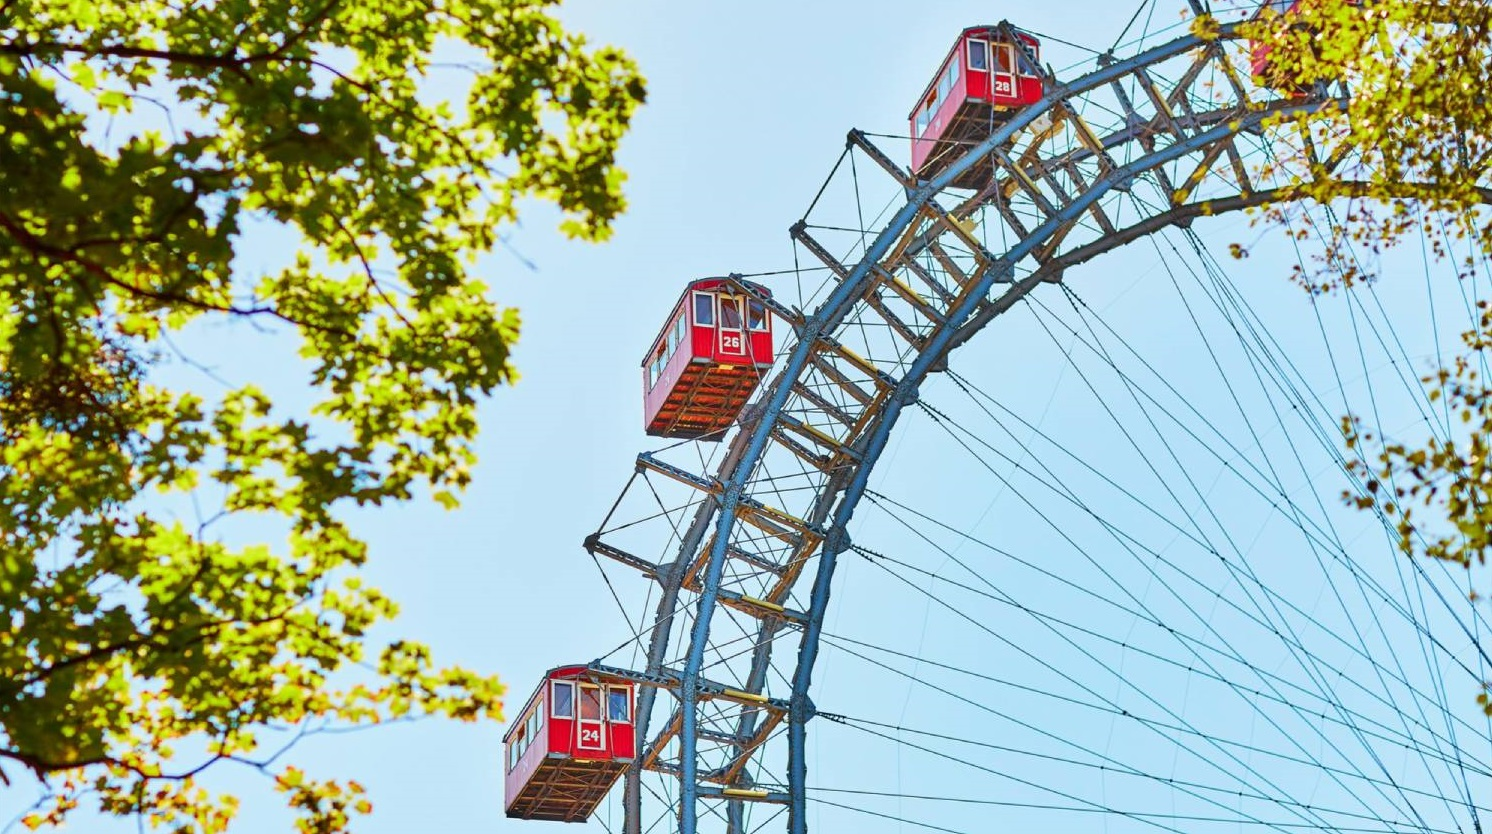 Vienna Prater Park- Things To Do In Vienna